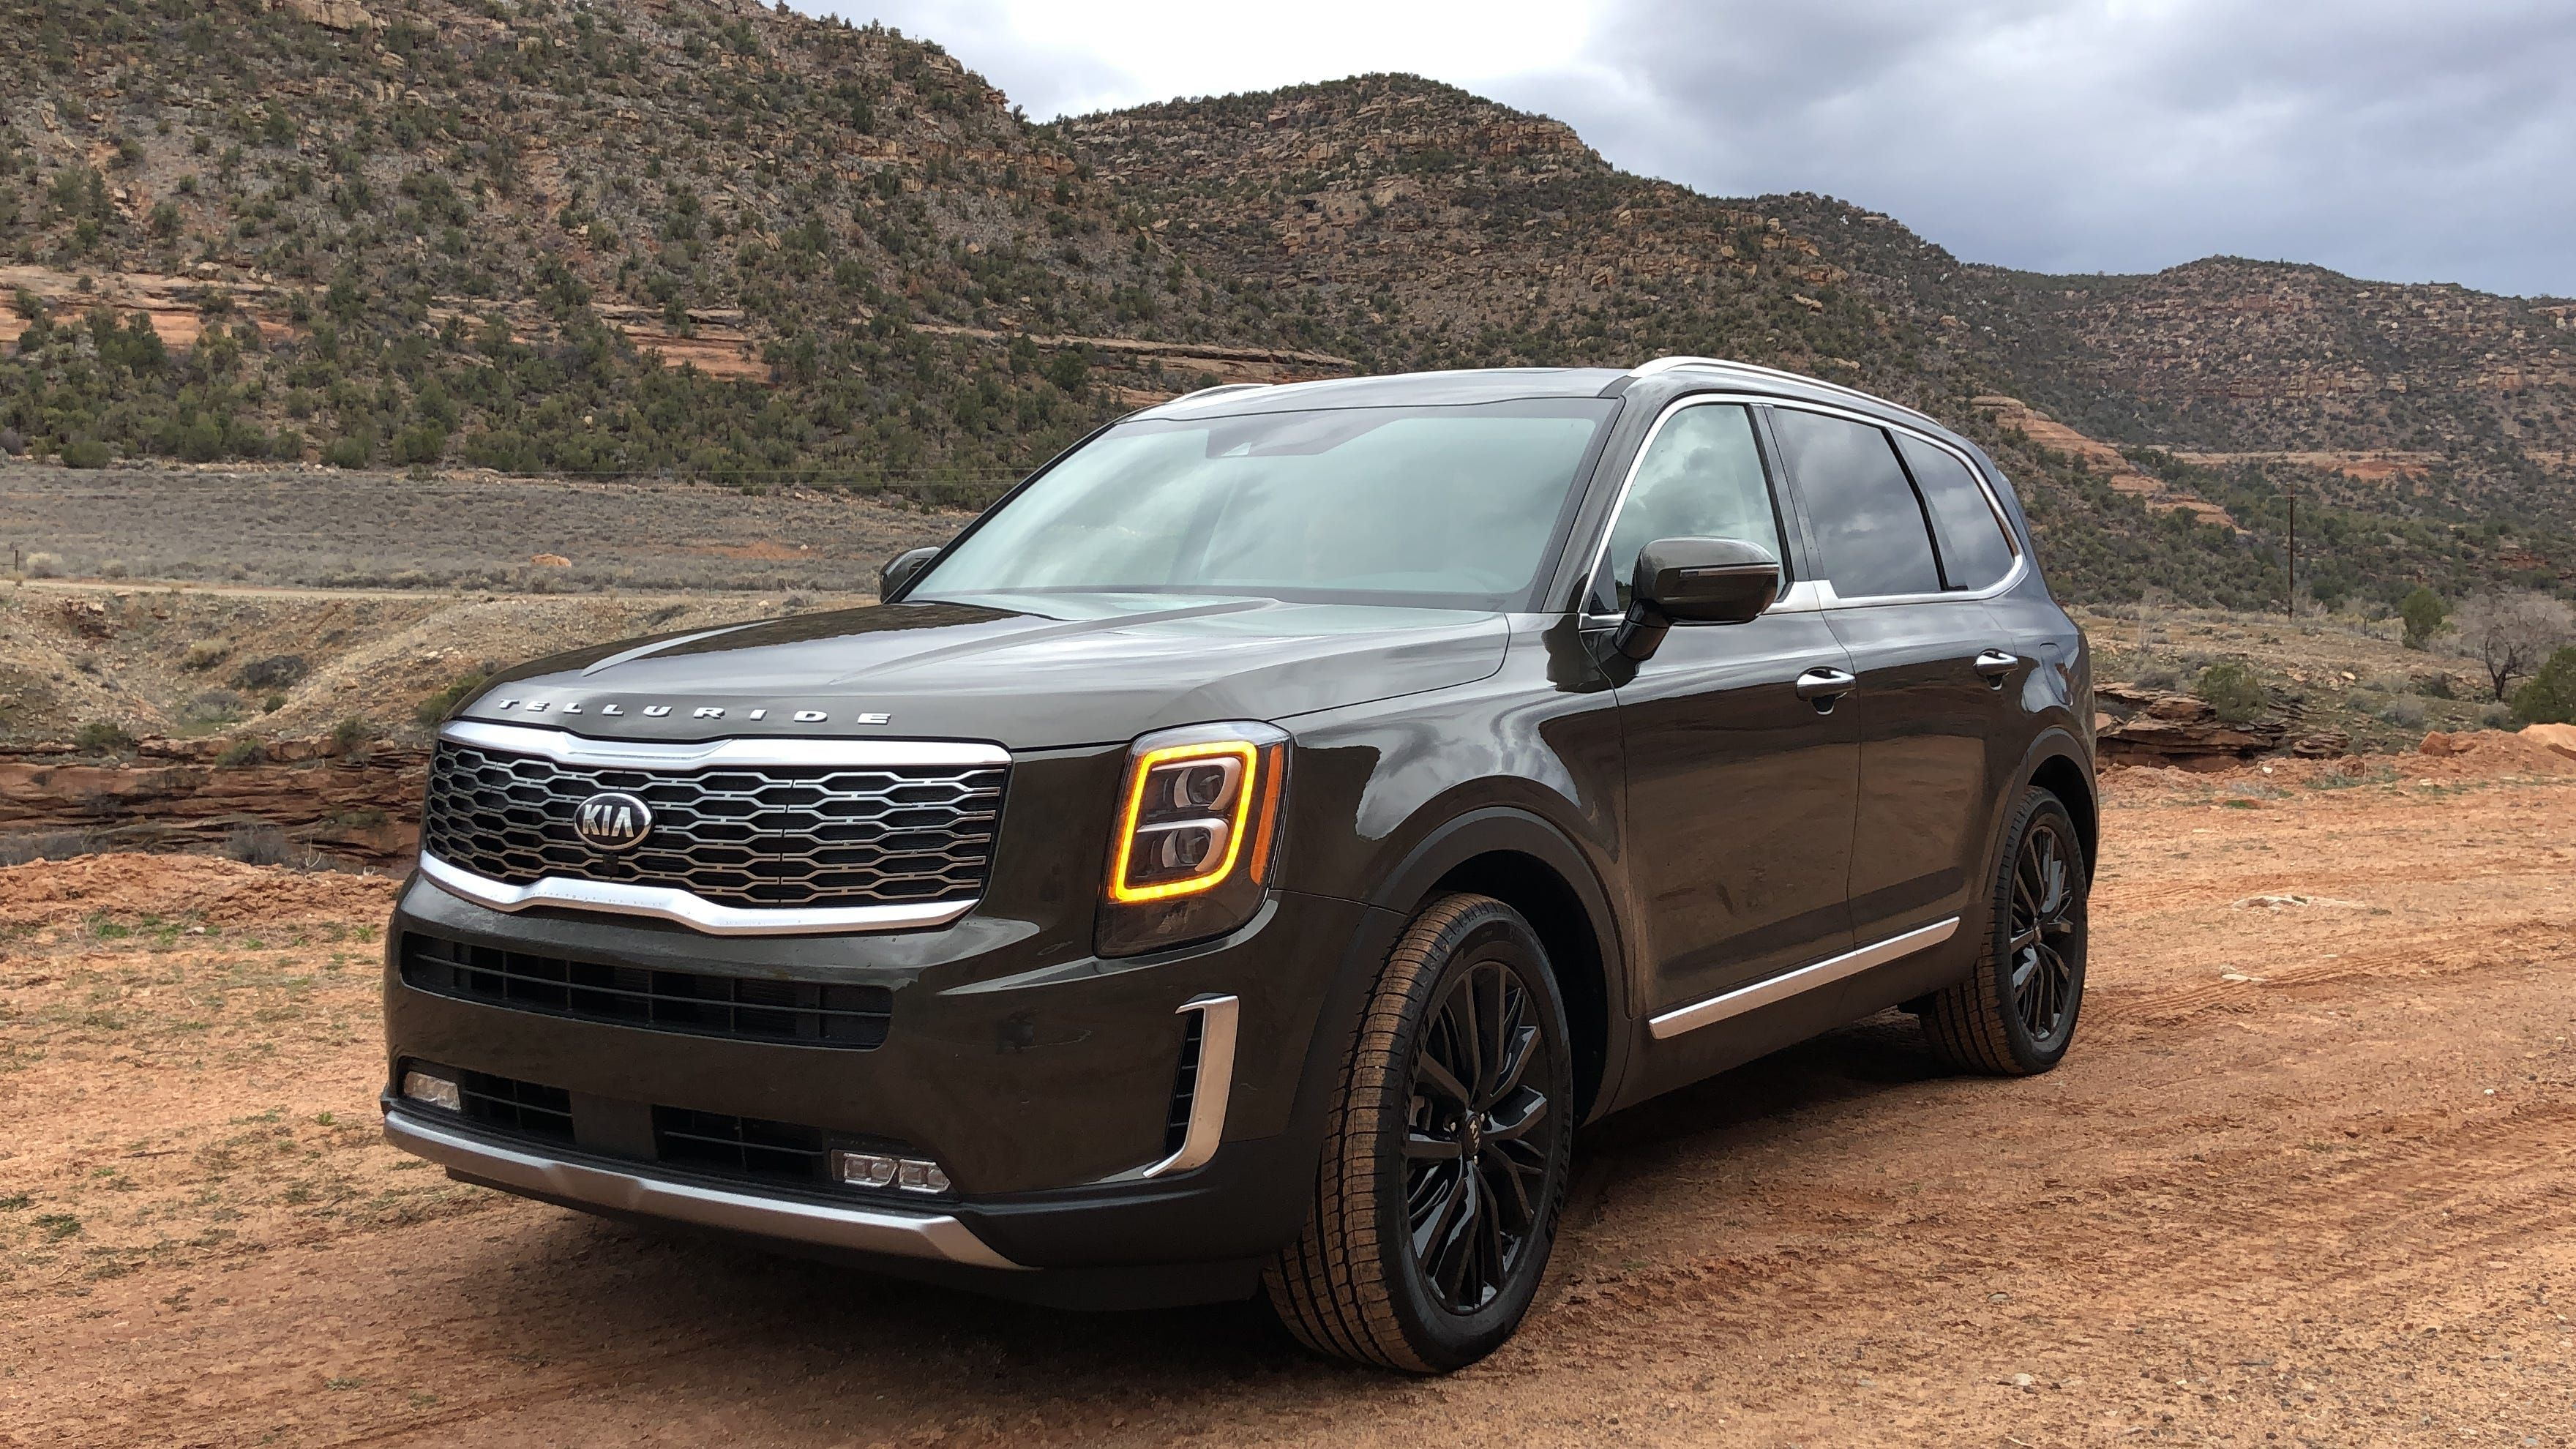 Free Press Utility Of The Year Kia Telluride S Value And Style Overwhelm Competition New Suv Kia Best New Cars